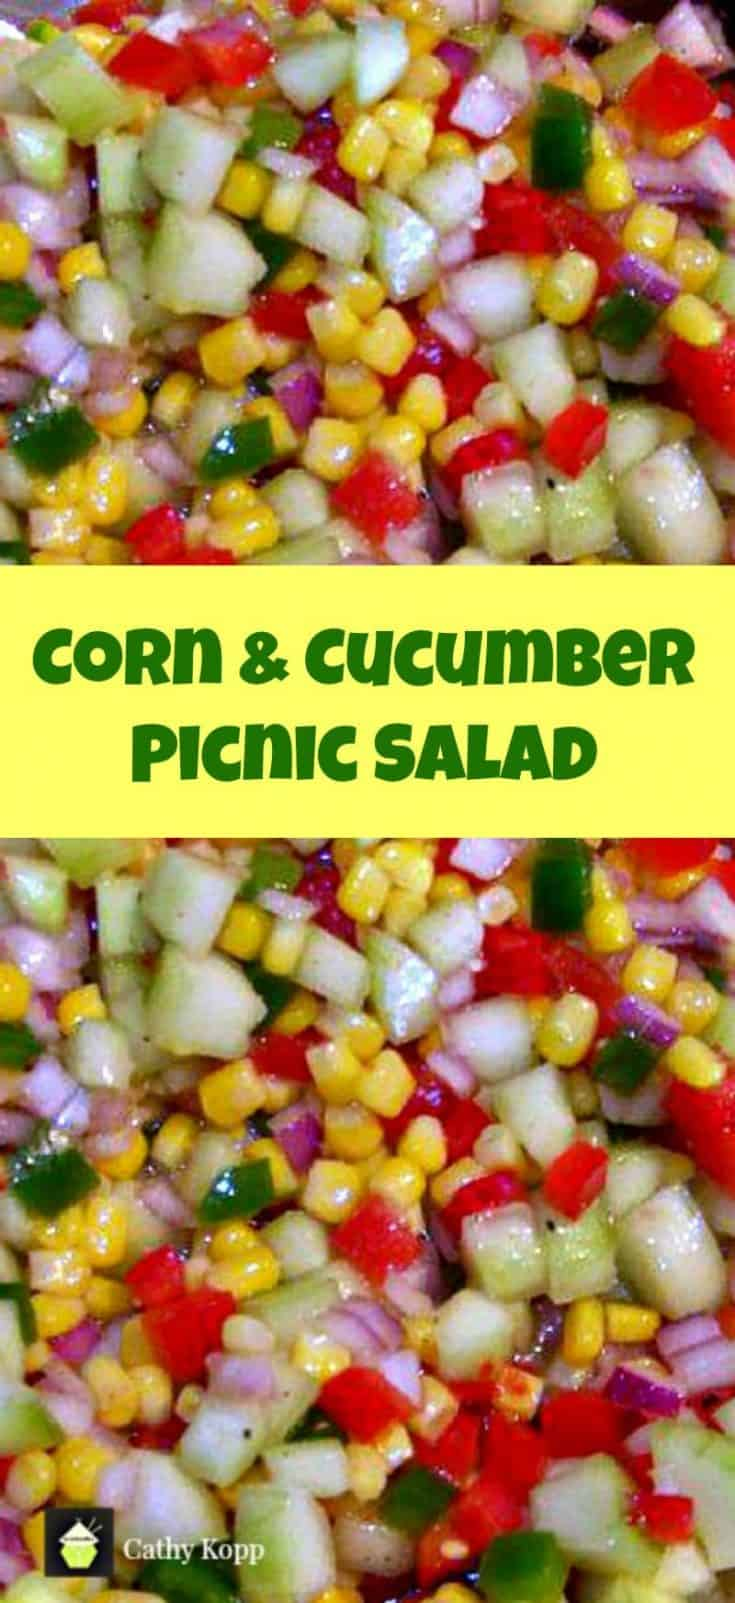 Corn and Cucumber Picnic Salad. A very simple yet great tasting salad and perfect for the holidays!